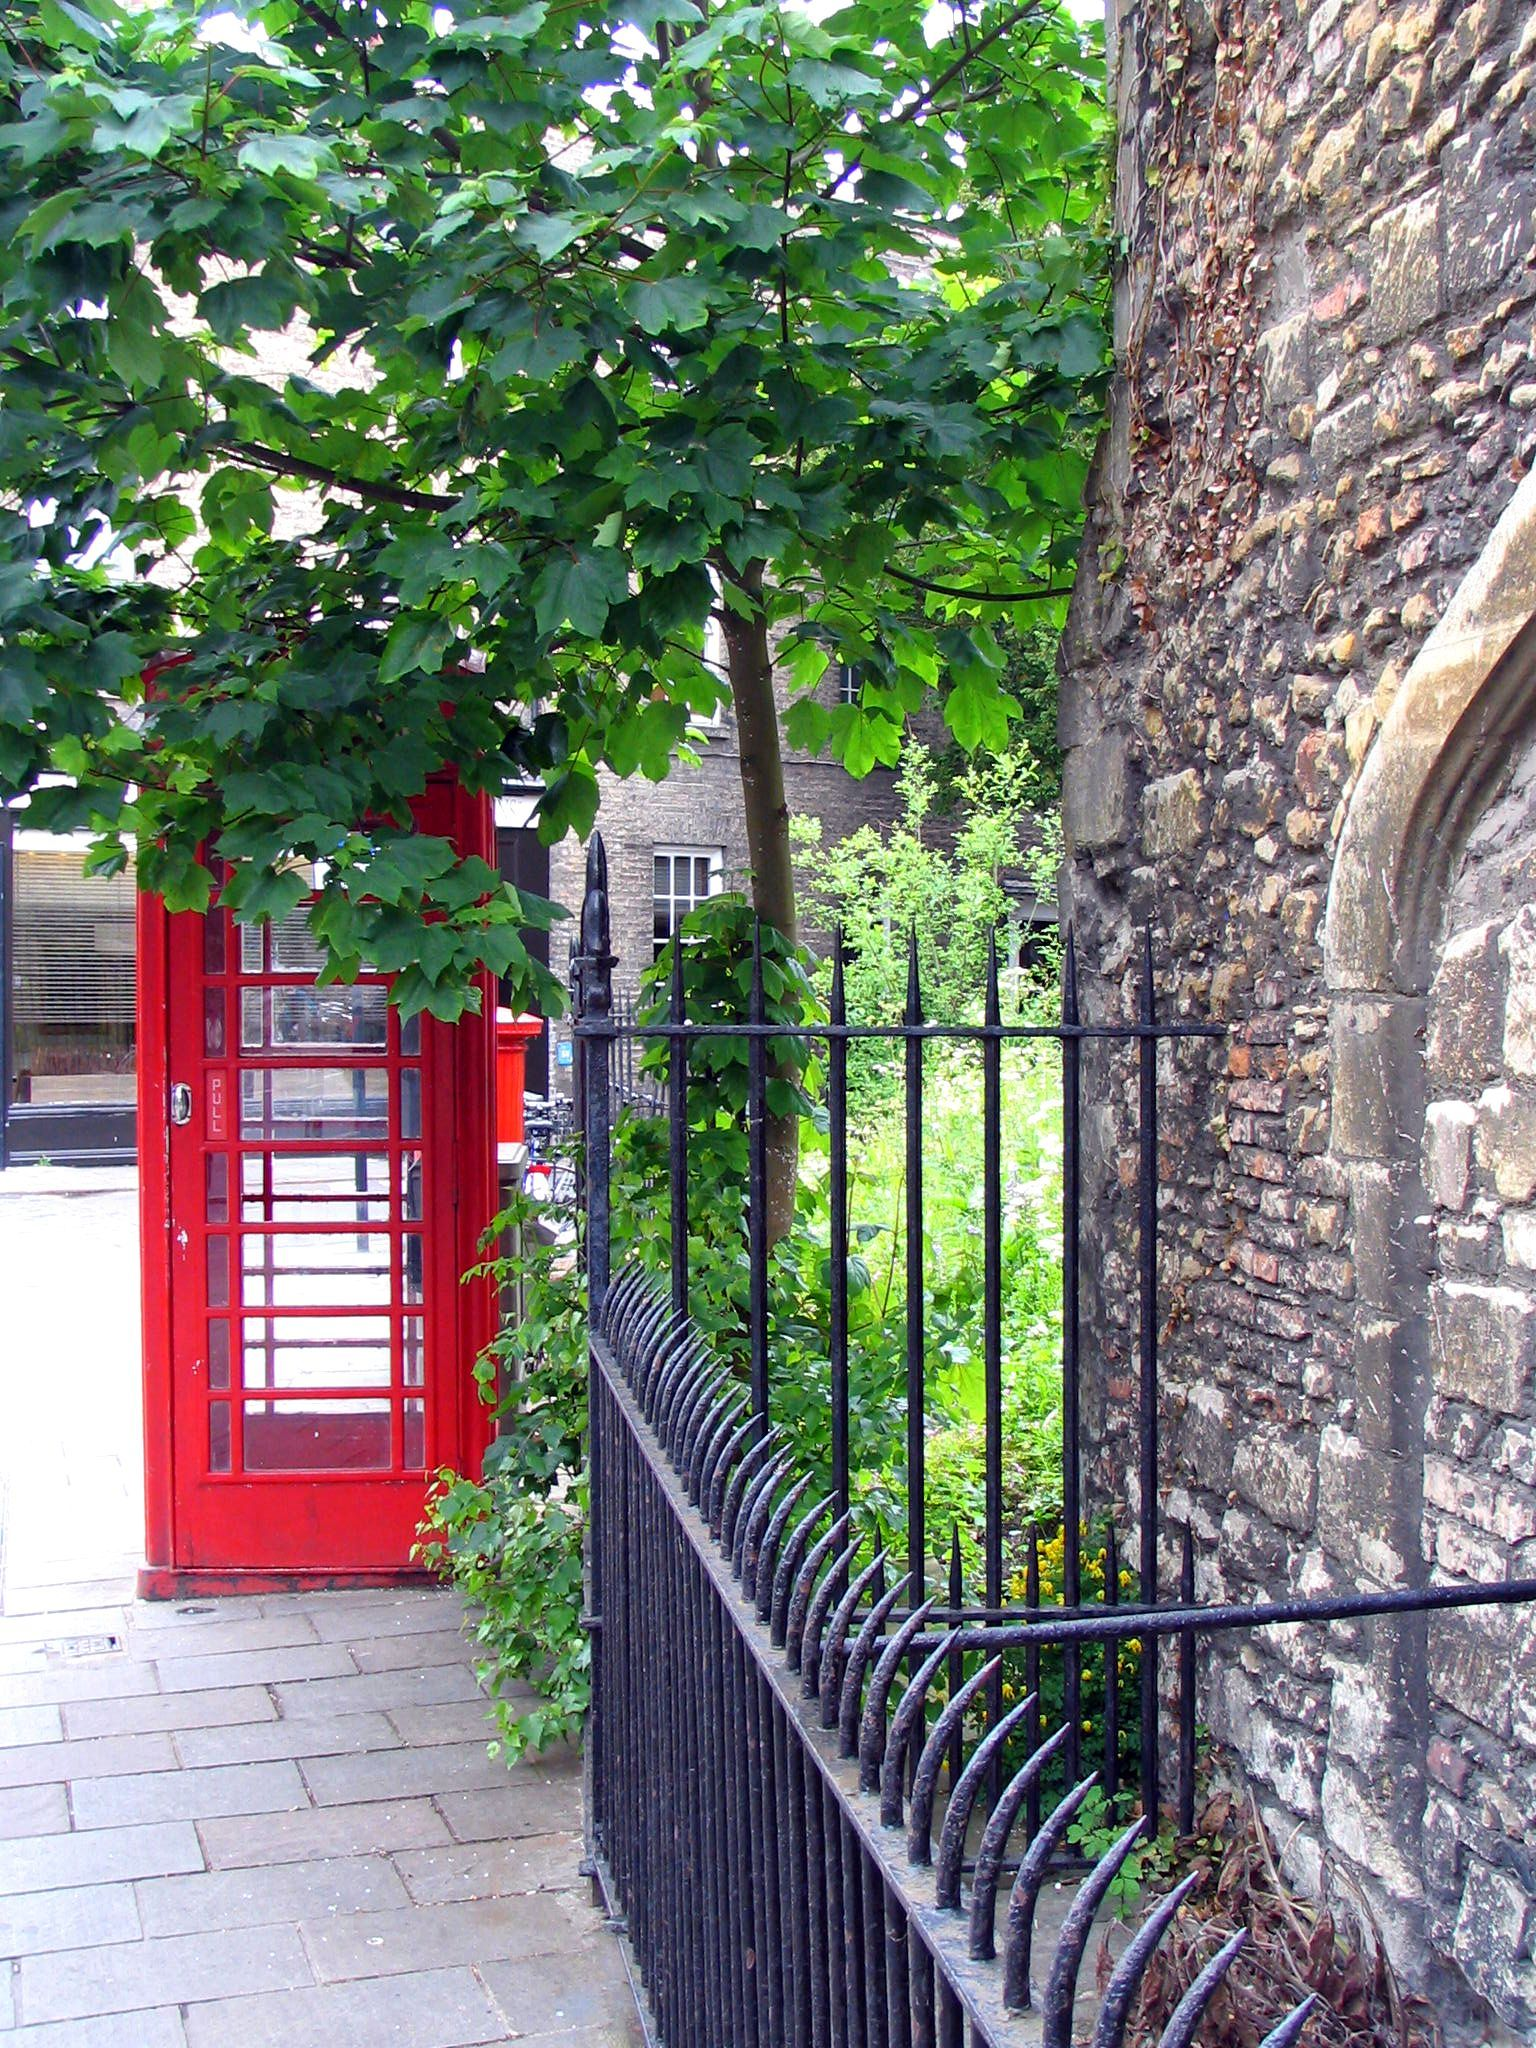 love red phone booths!